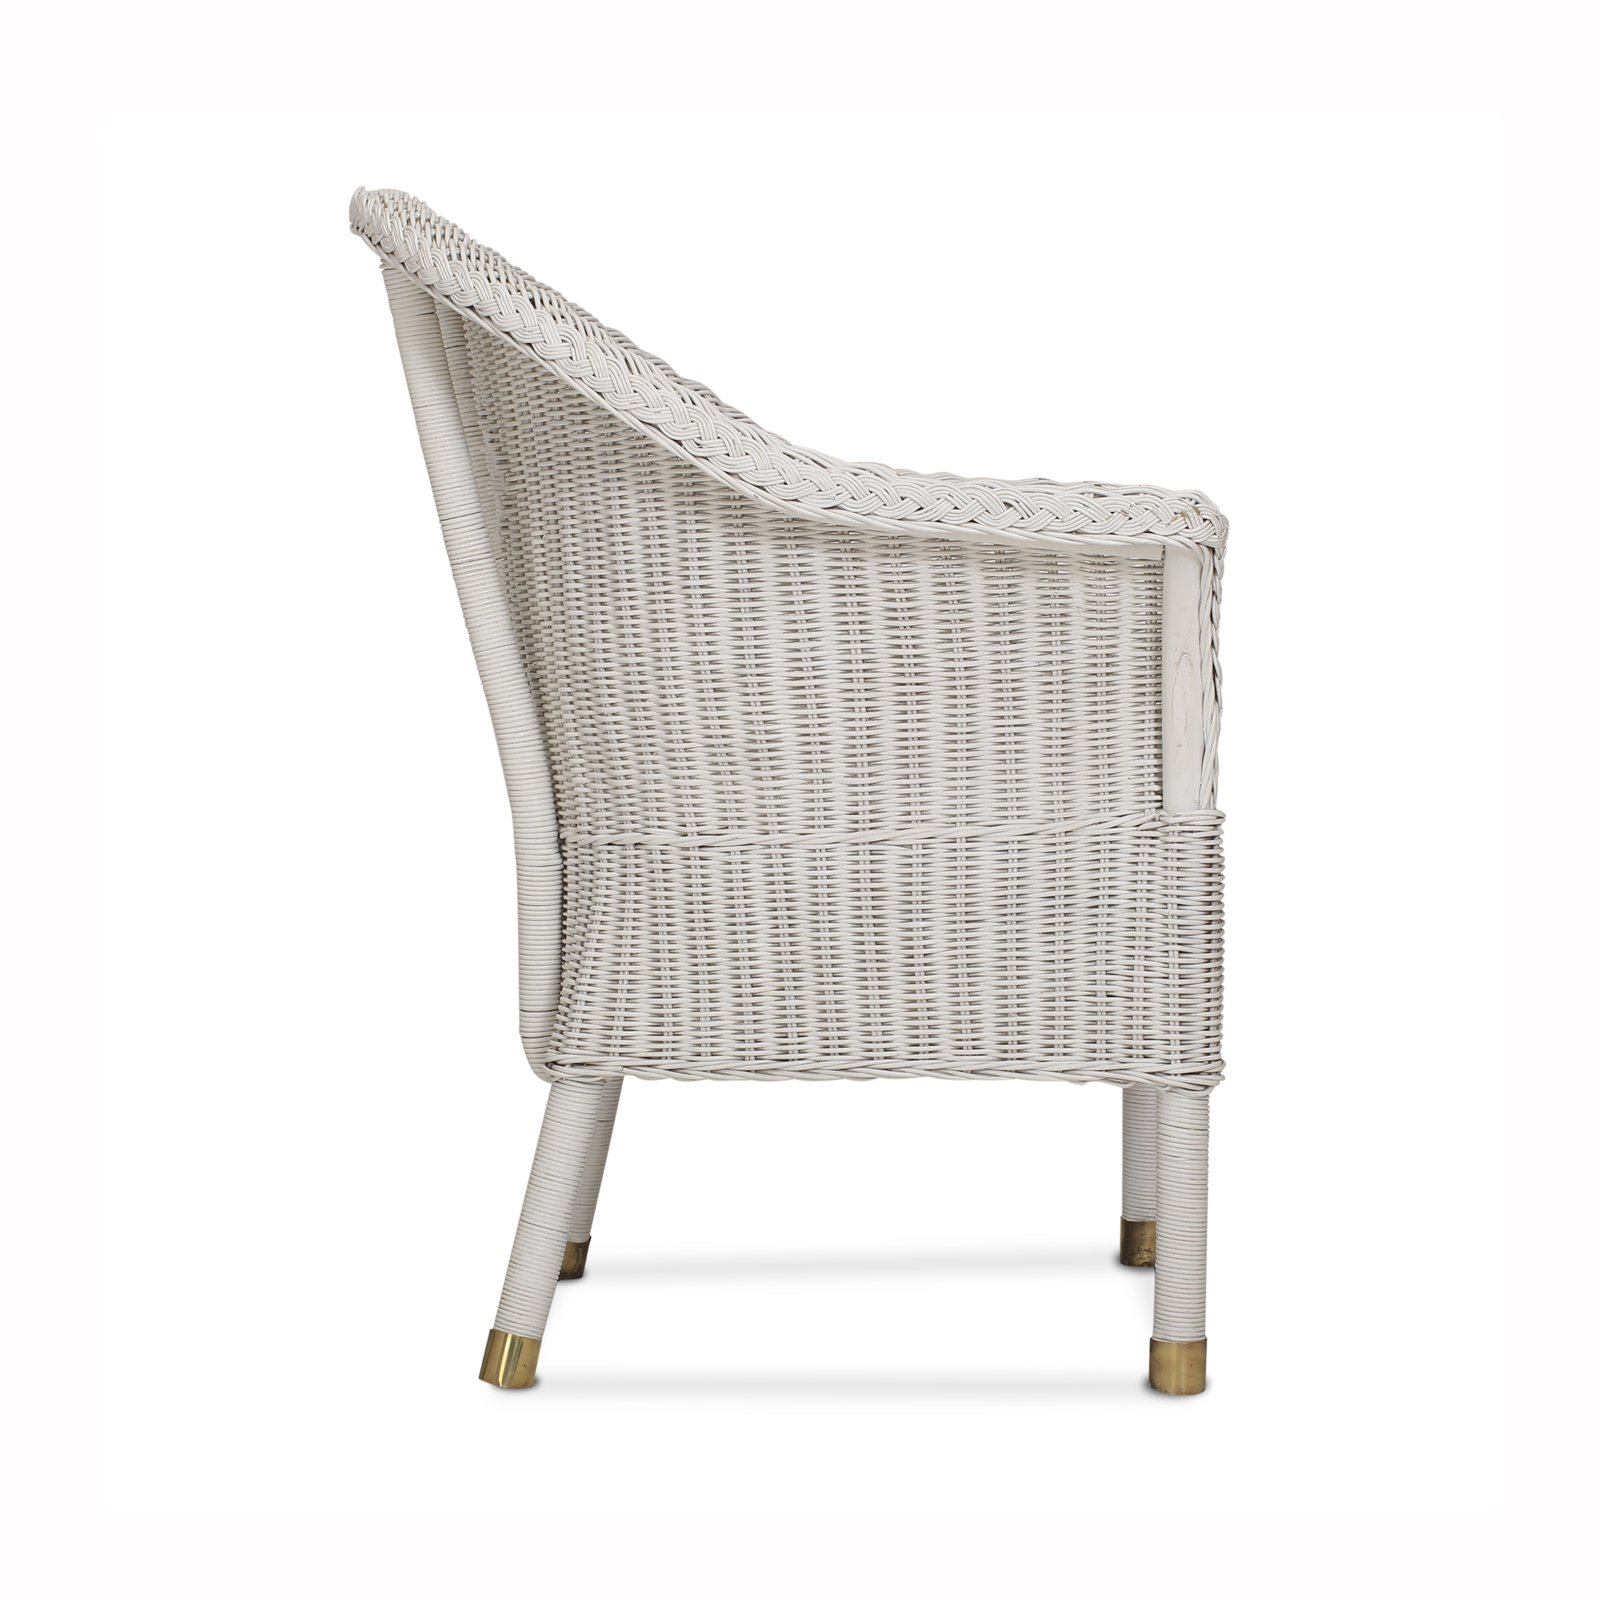 CALYPSO DINING CHAIR 2 - STUART MEMBERY HOME COLLECTION